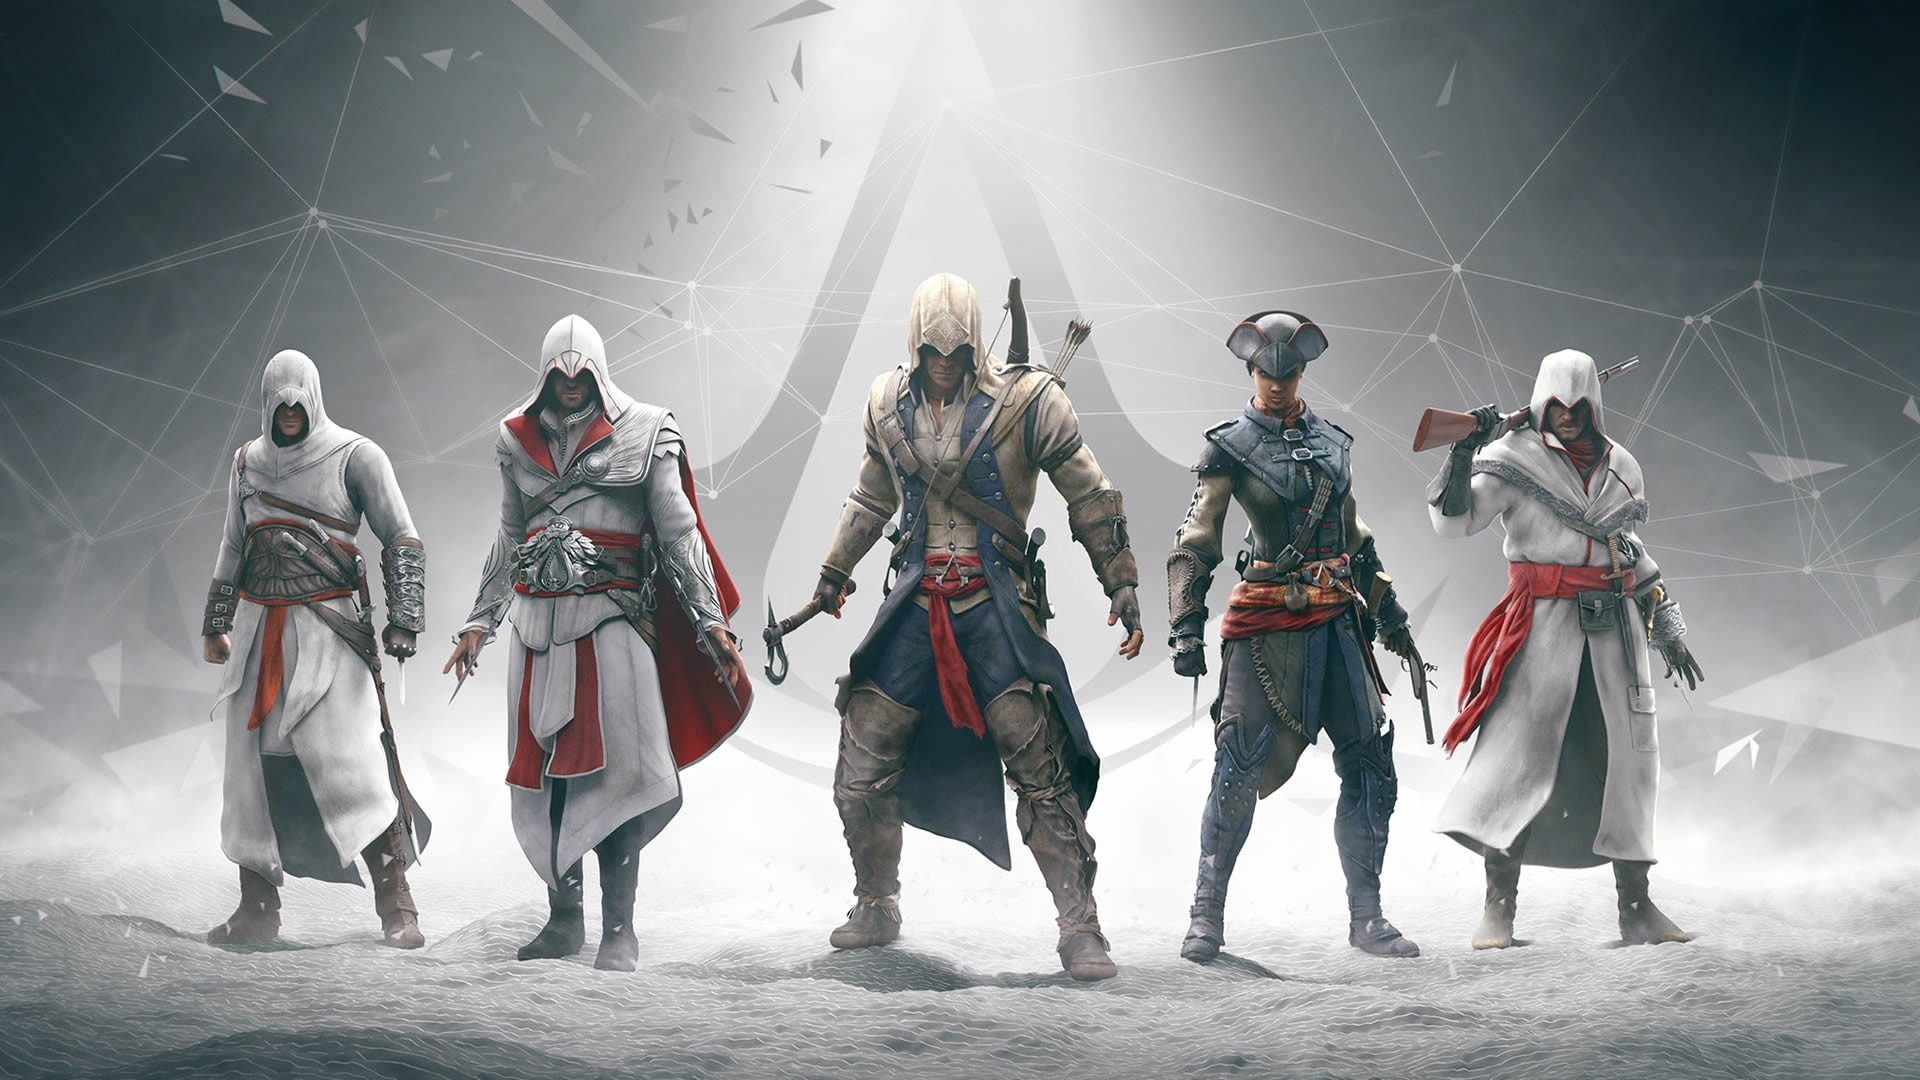 Assassin's Creed 2 Wallpaper Pic